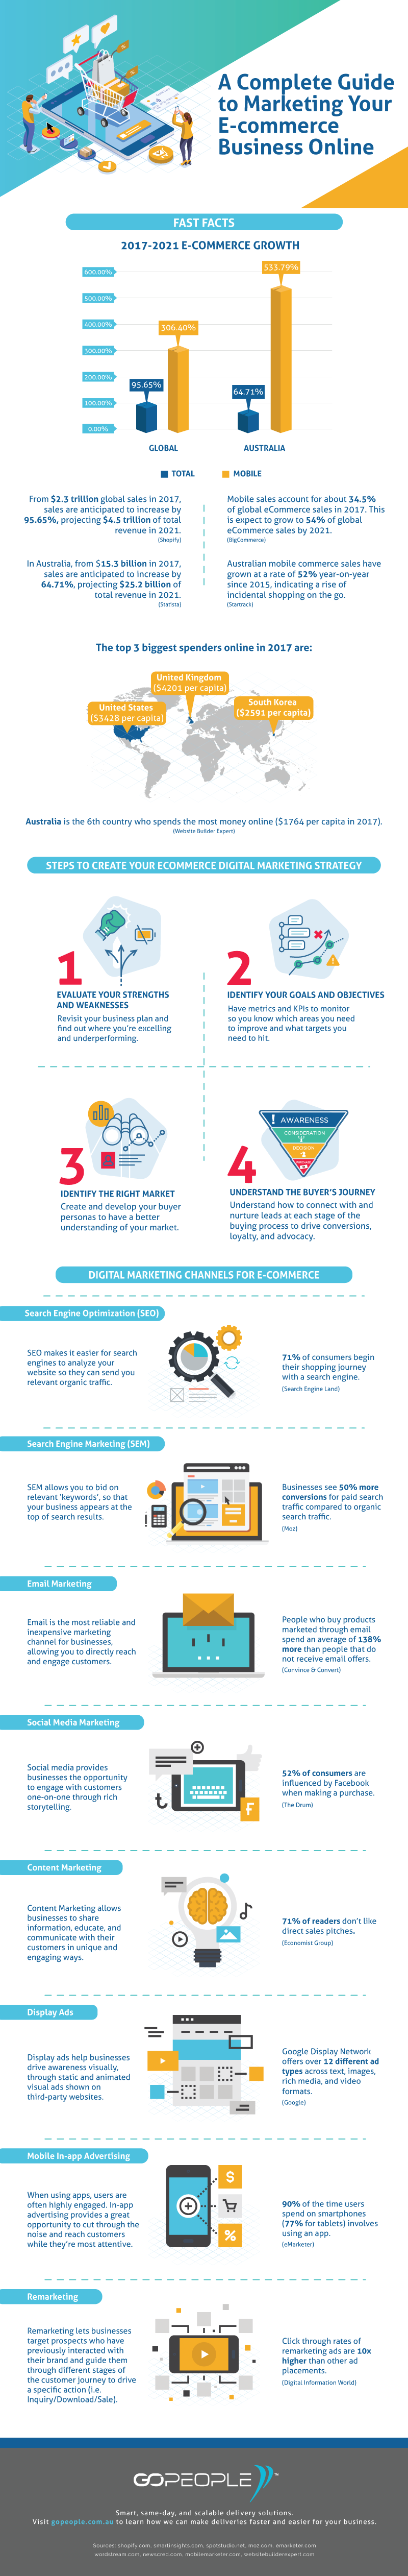 Complete Guide to Marketing Your Ecommerce Business Online-Infographic